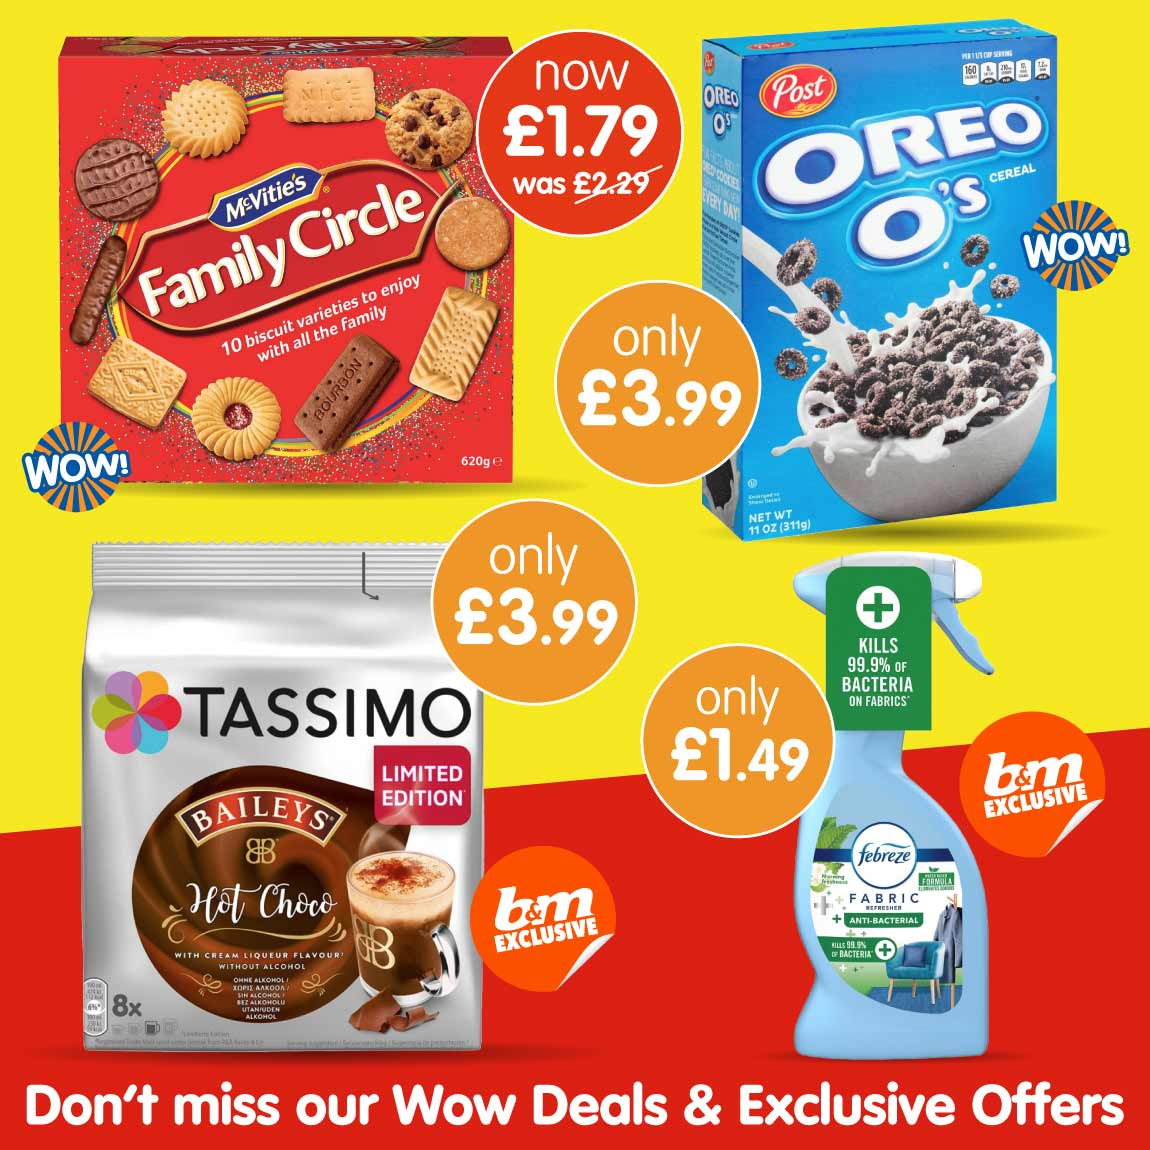 Latest Wow Deals and Exclusive's at B&M.